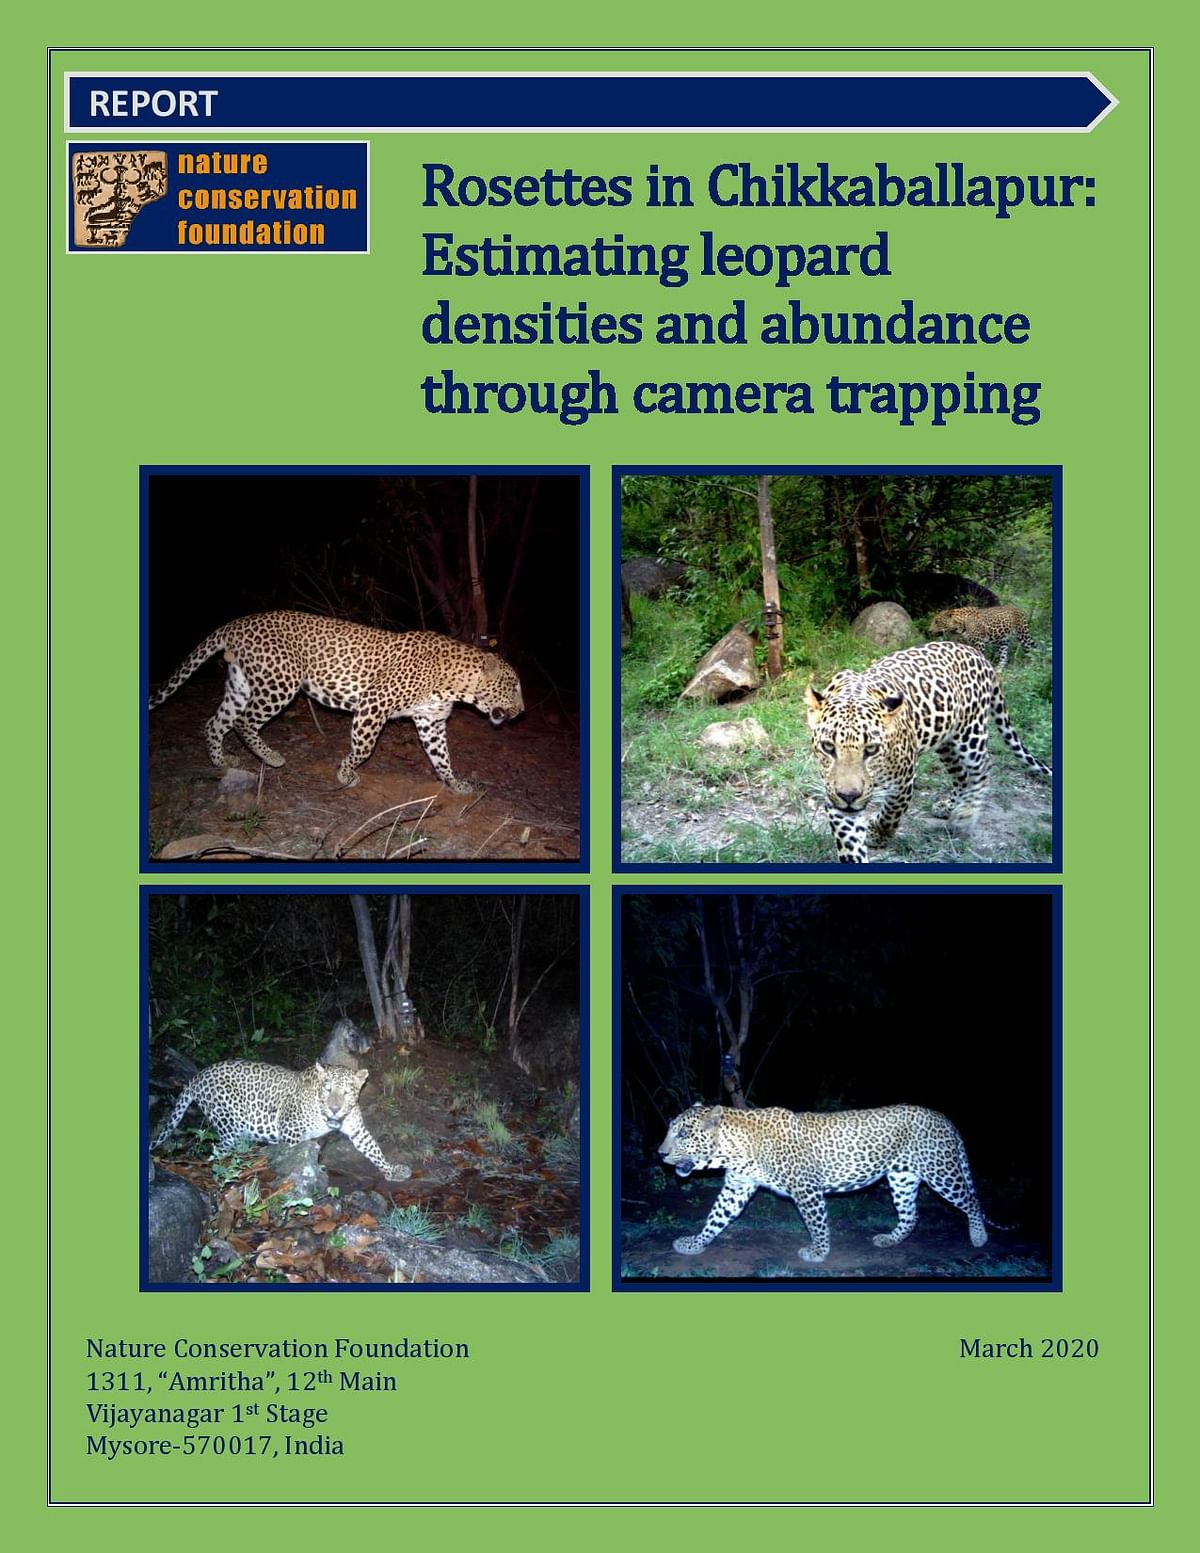 Rosettes in Chikkaballapur: Estimating leopard densities and abundance through camera trapping